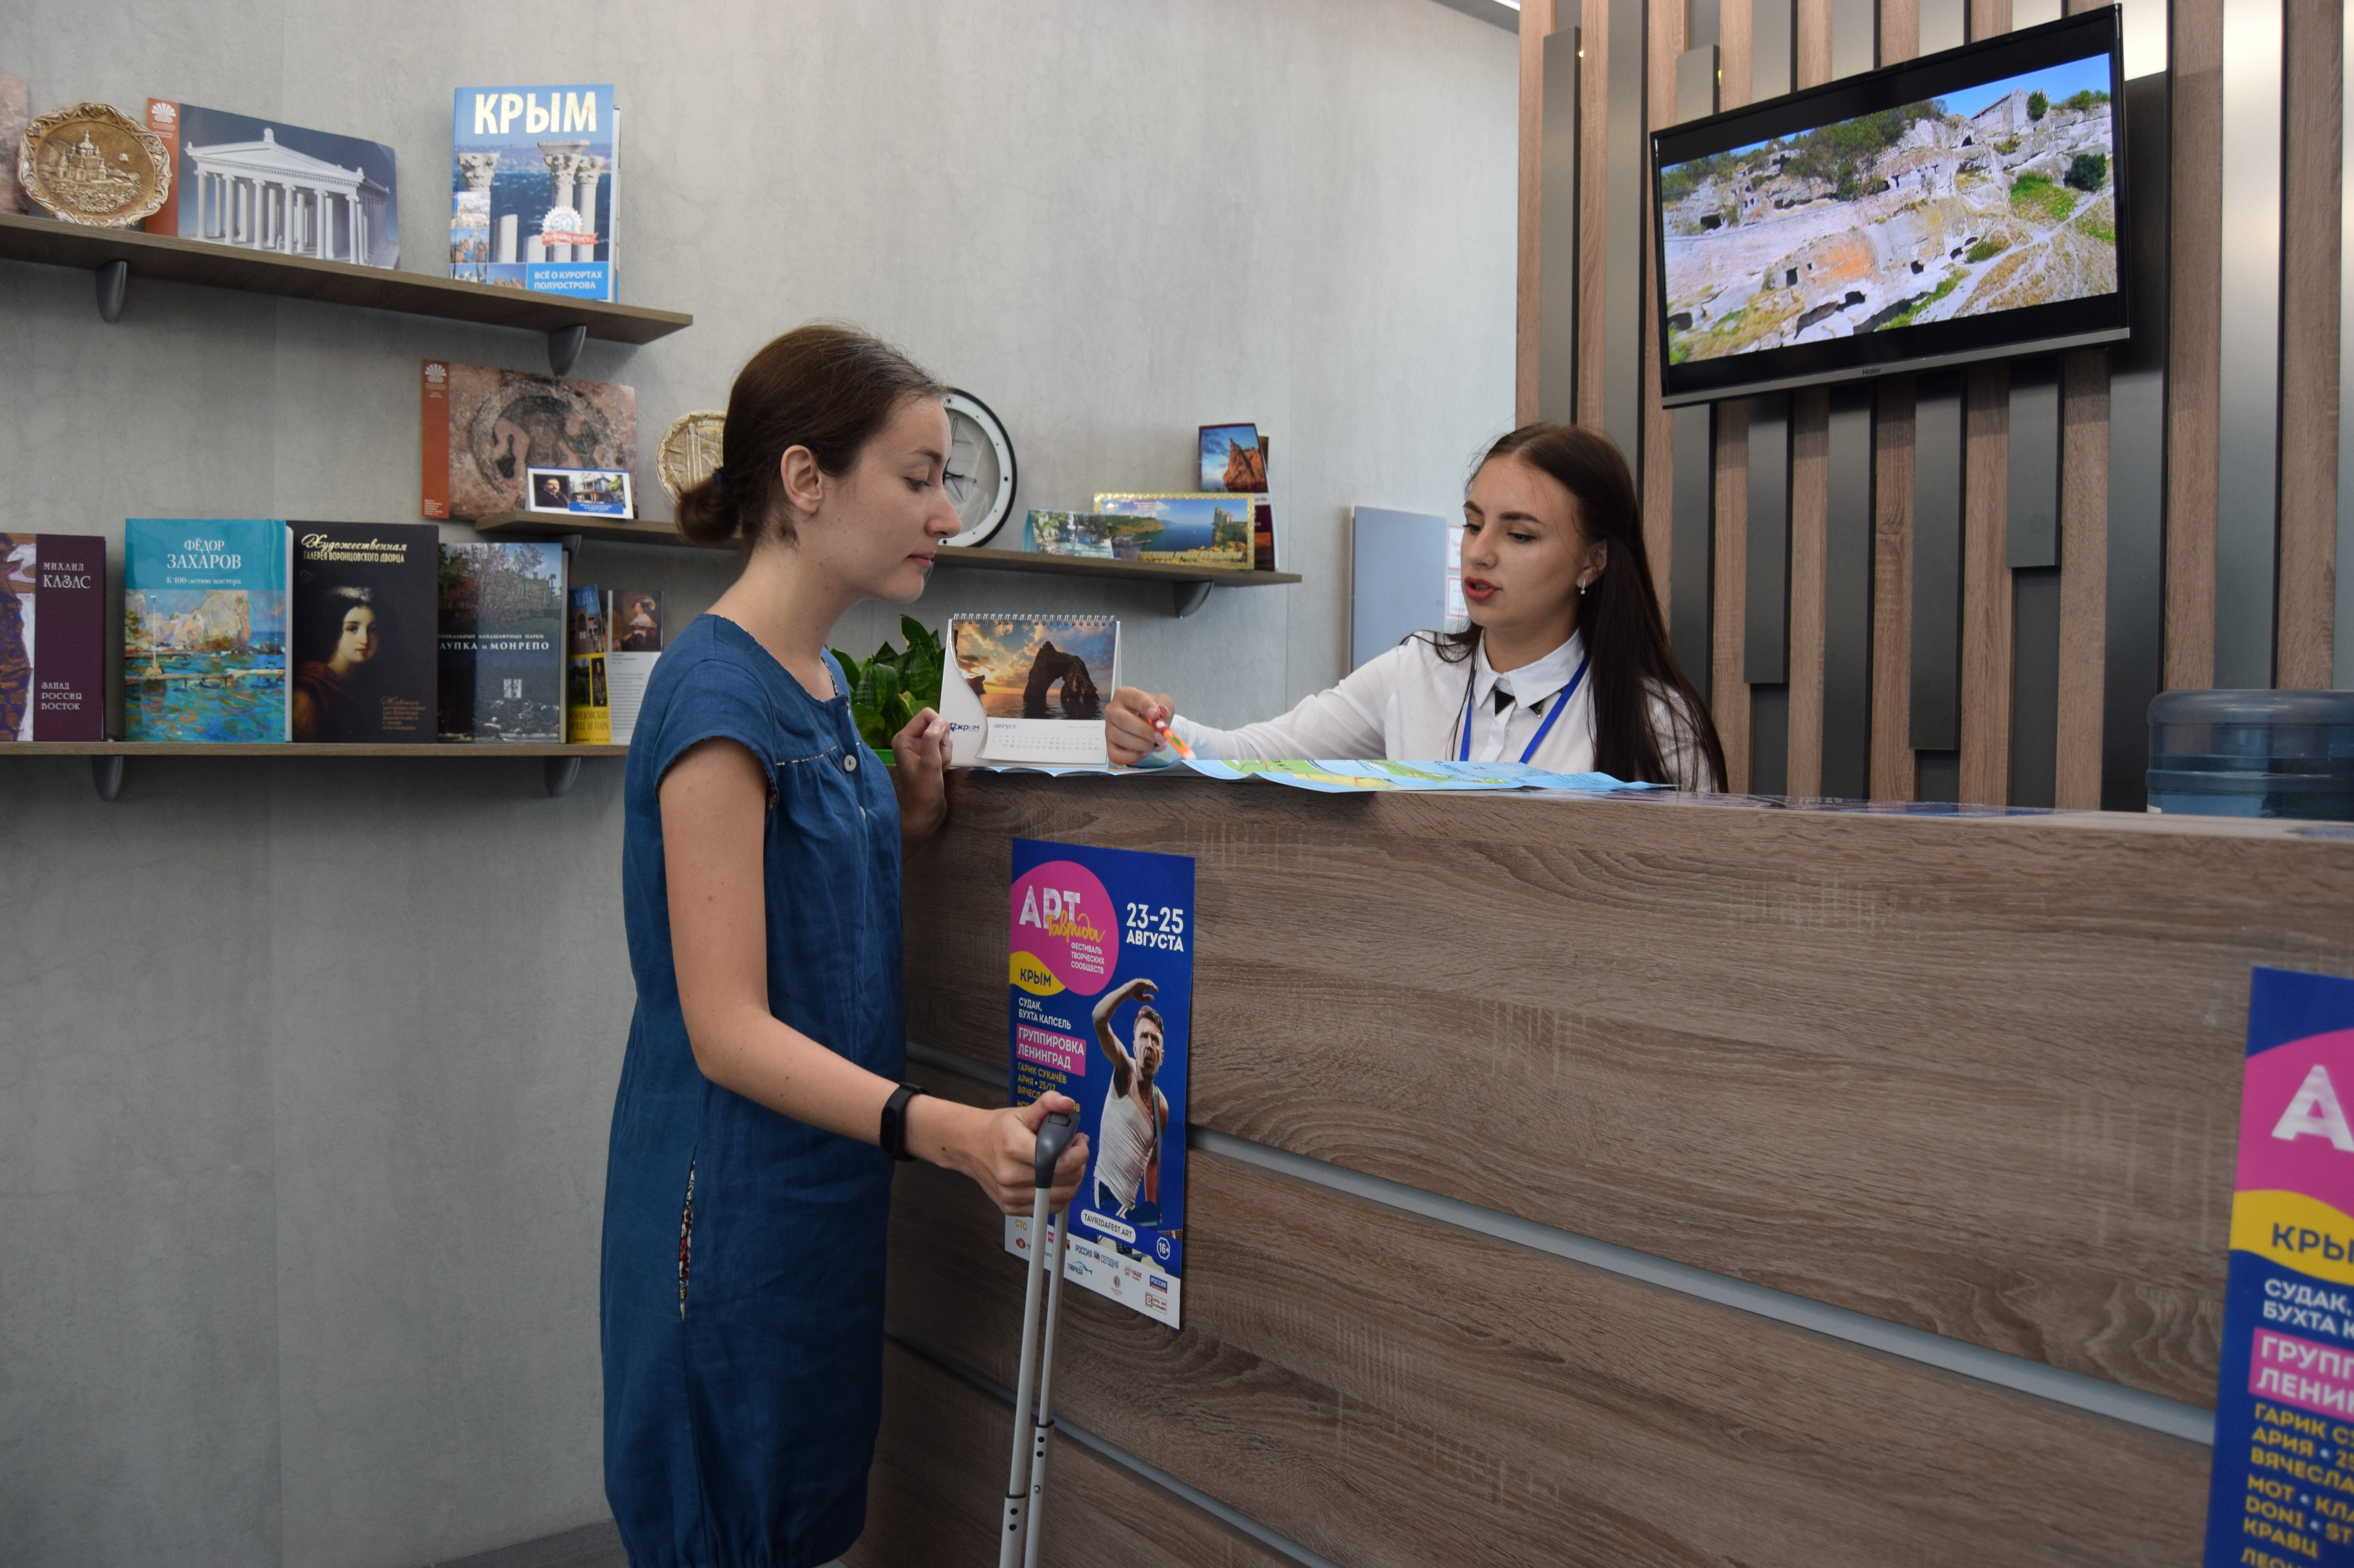 The work of the tourist information center at the airport of Simferopol